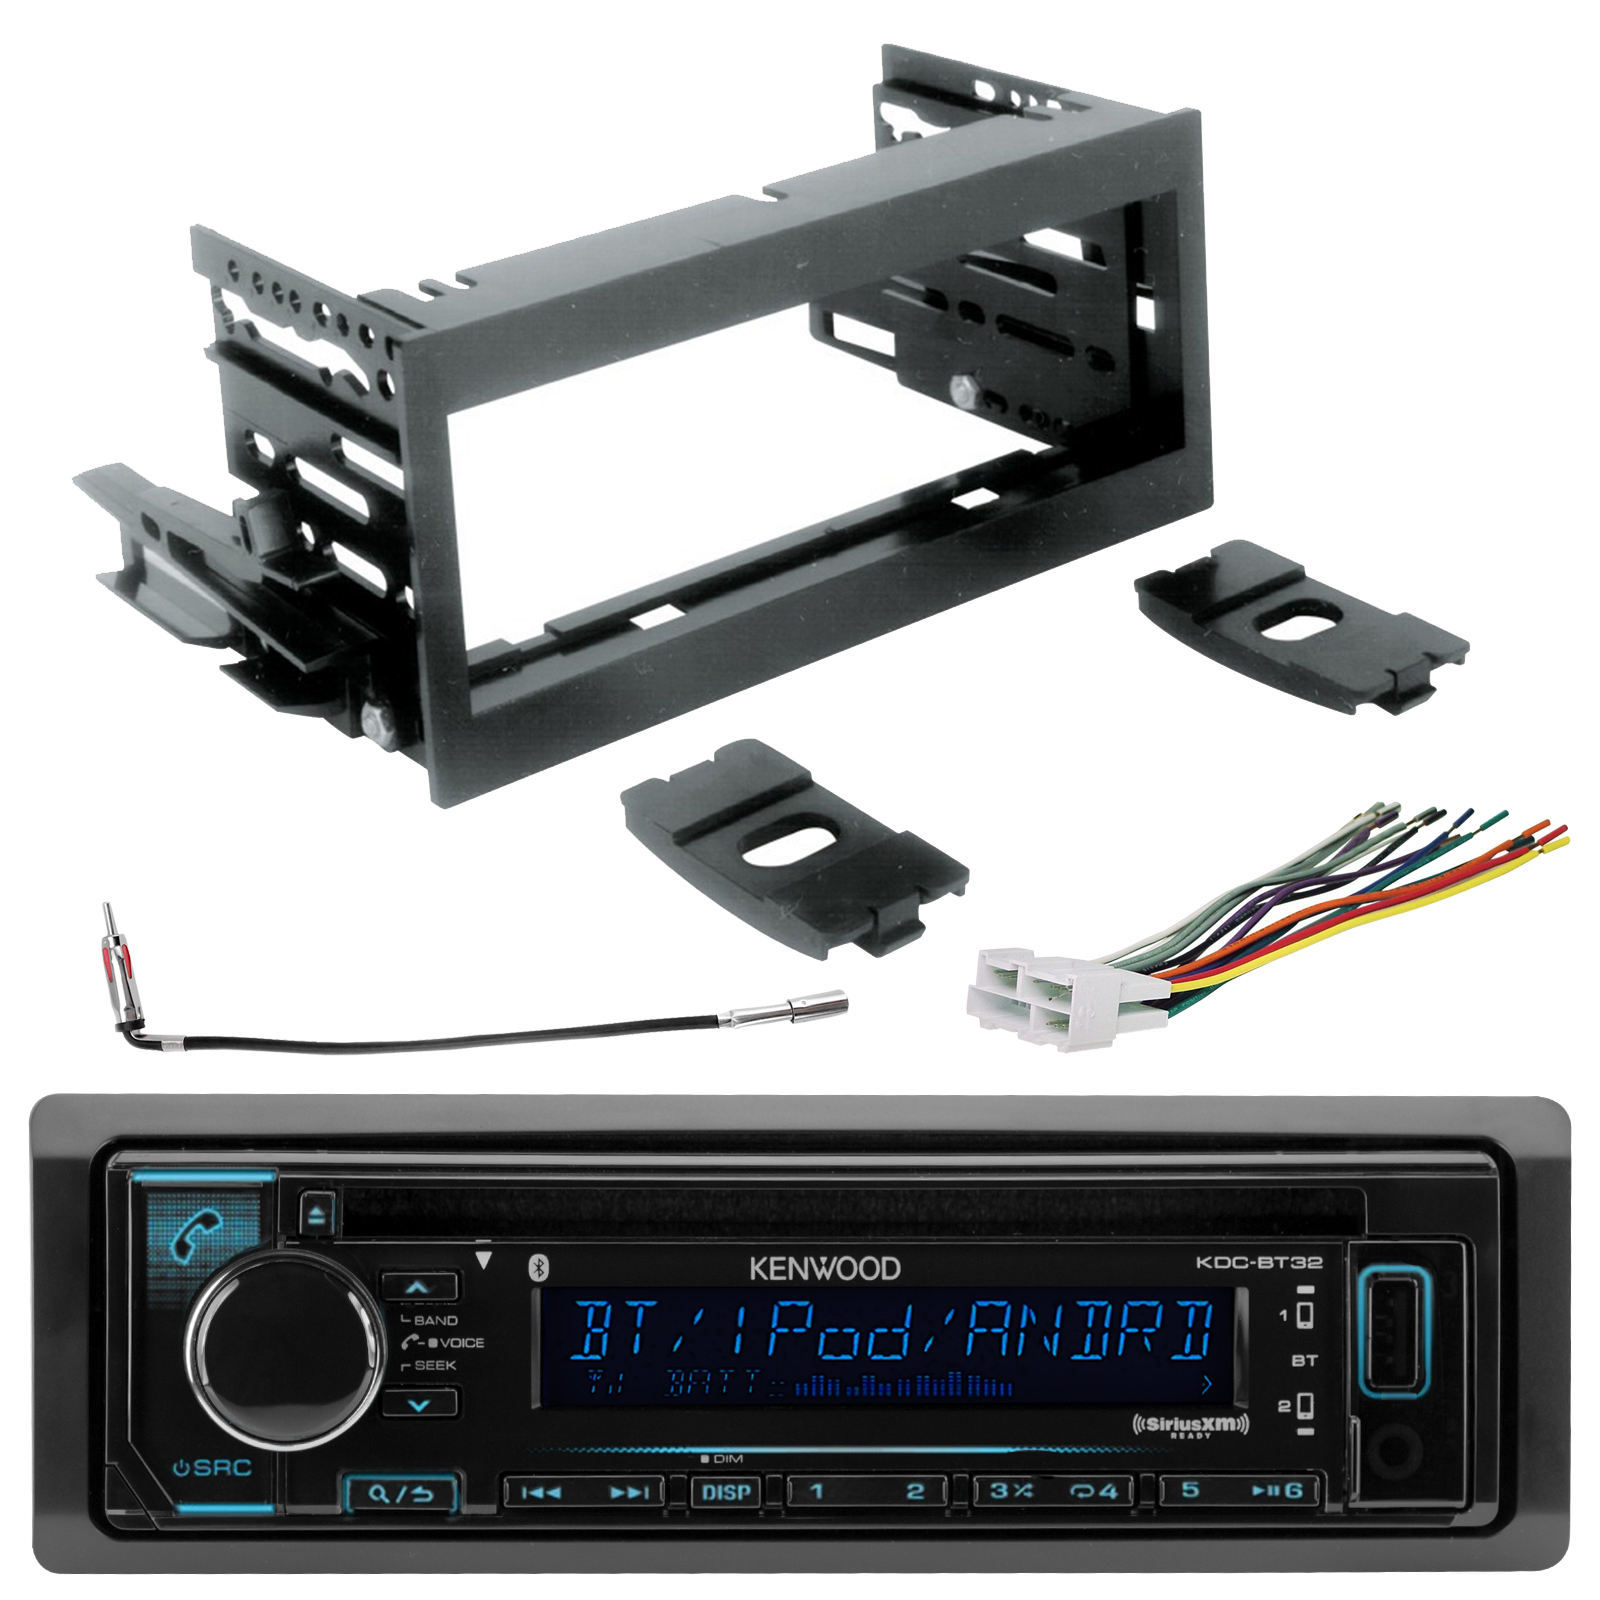 Kenwood Gm Wiring Harness Electrical Diagrams Ddx512 Wire Kdcbt32 In Dash Cd Mp3 Bluetooth Receiver Scosche Gm1483b Stereo